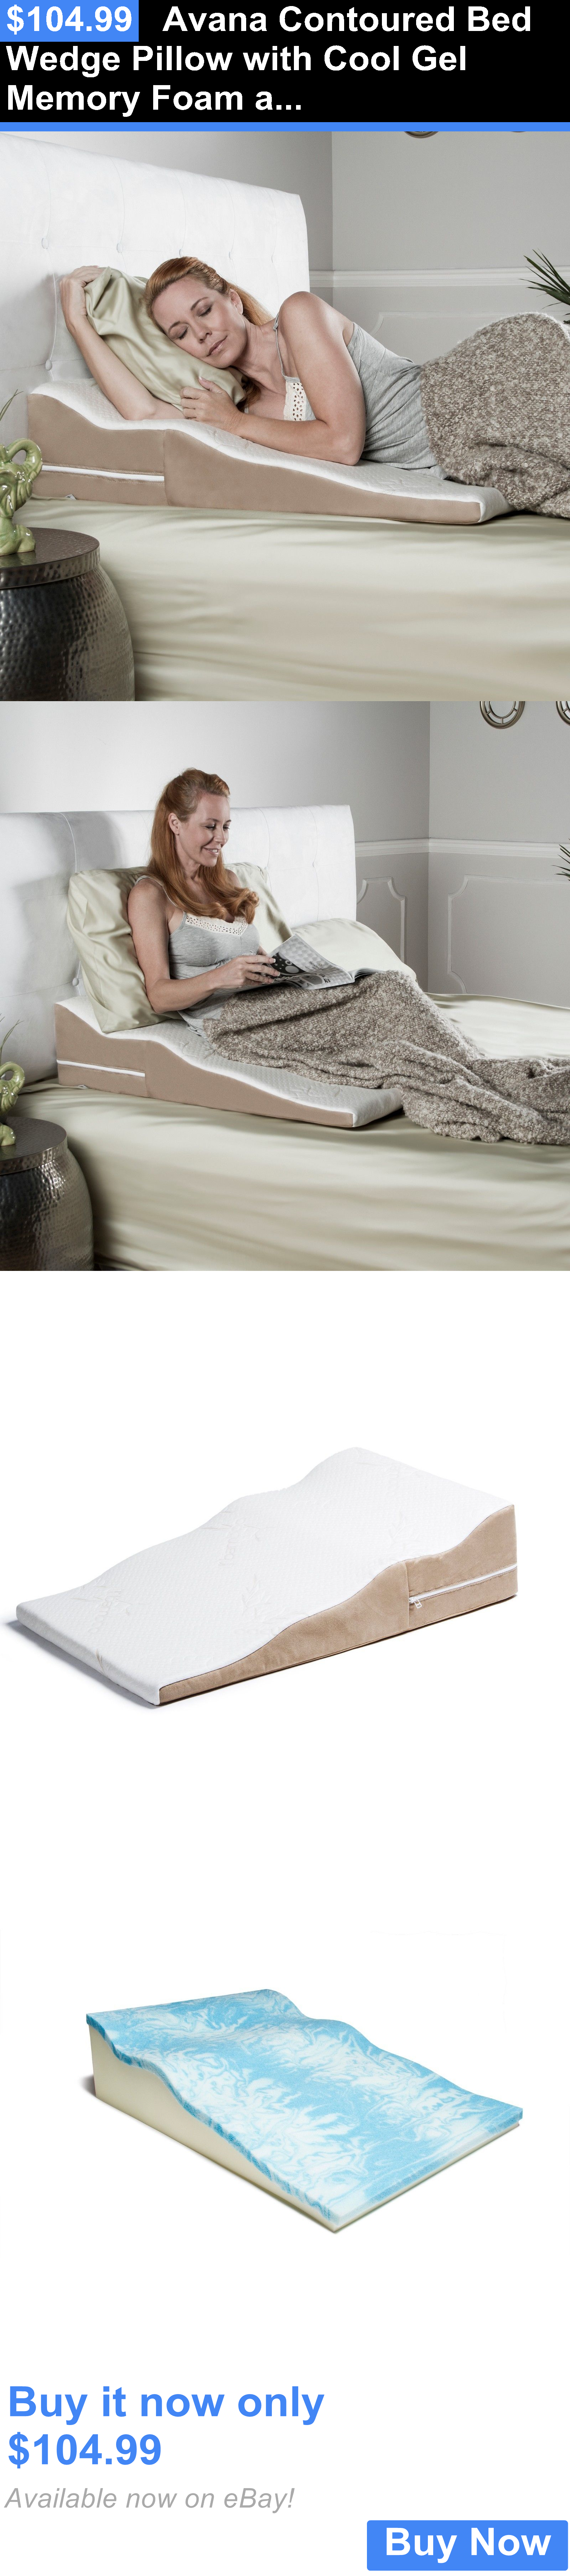 wedge pillow foam products by bed memory cheer collection